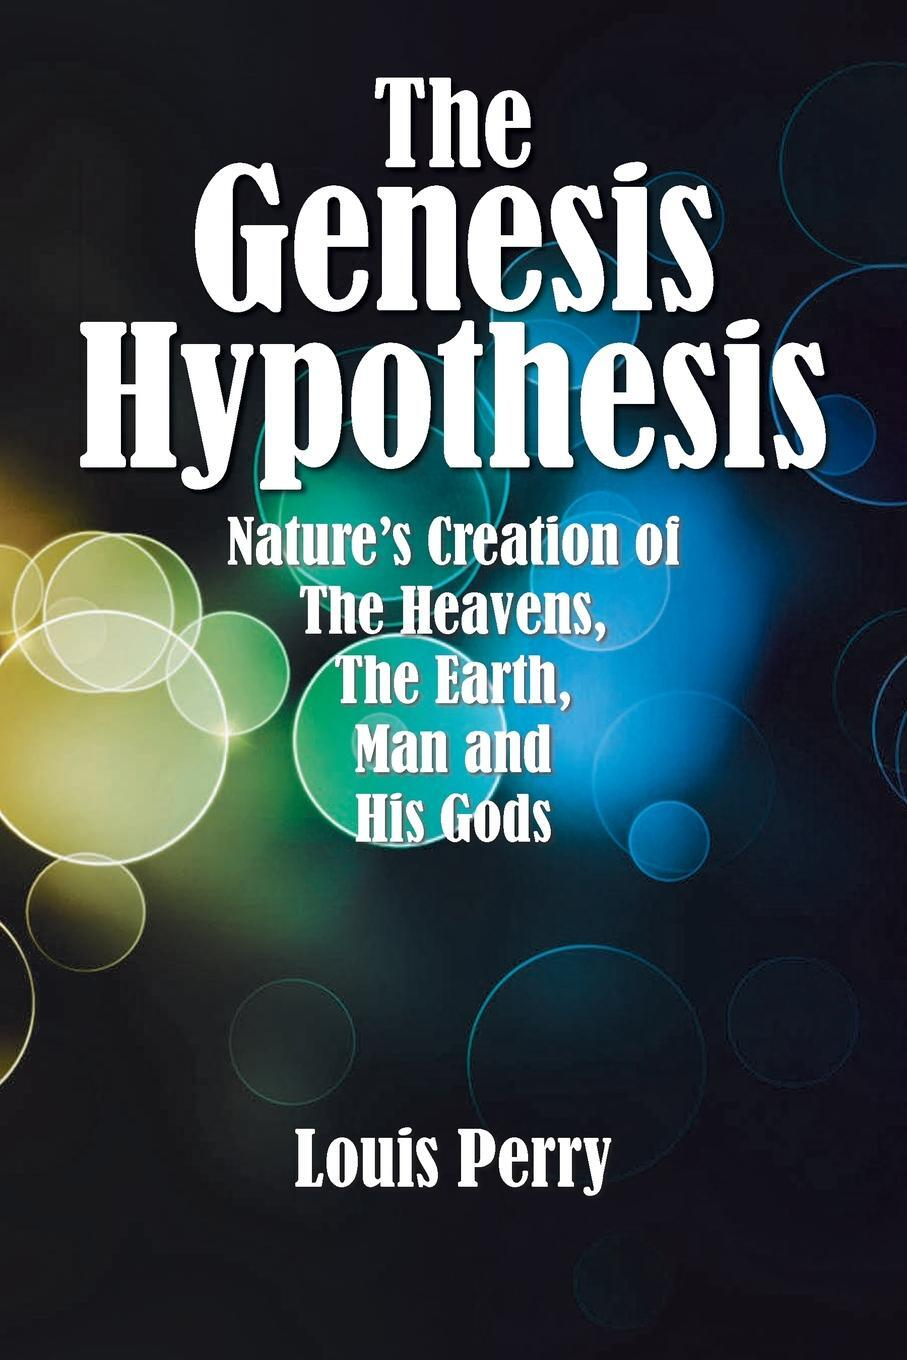 The Genesis Hypothesis. Nature's Creation of the Heavens, the Earth, Man and His Gods 9781796019896